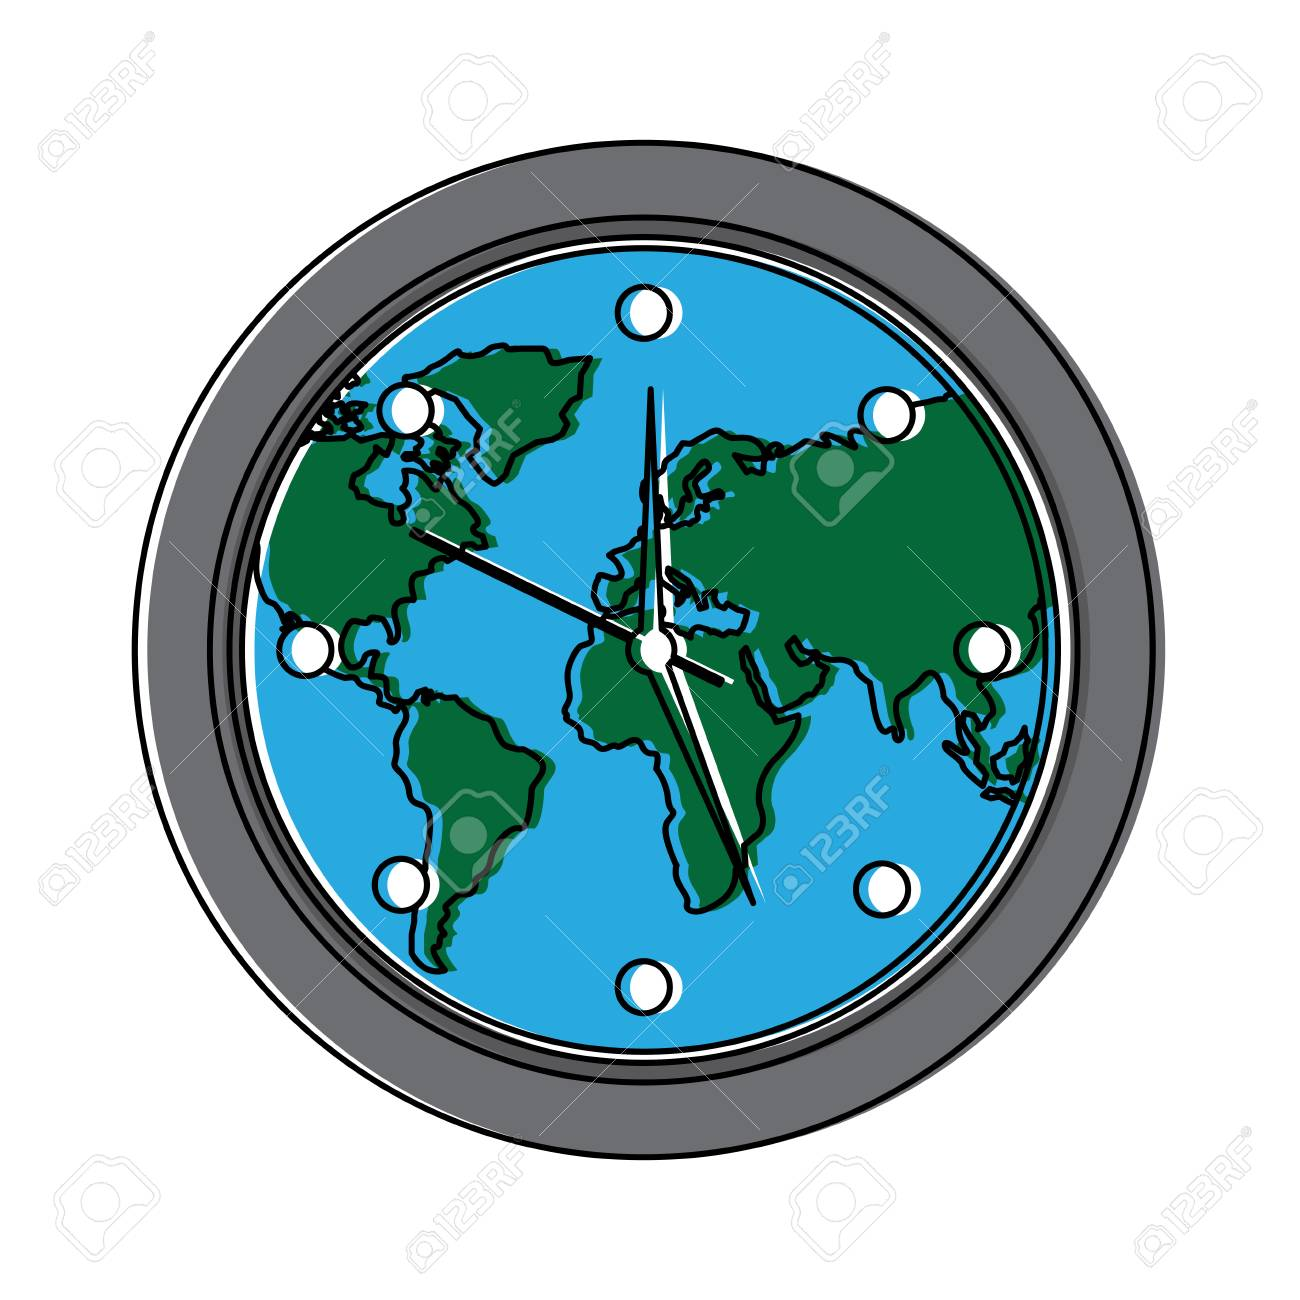 Round clock on world map ecology concept vector illustration royalty round clock on world map ecology concept vector illustration stock vector 95185620 gumiabroncs Image collections